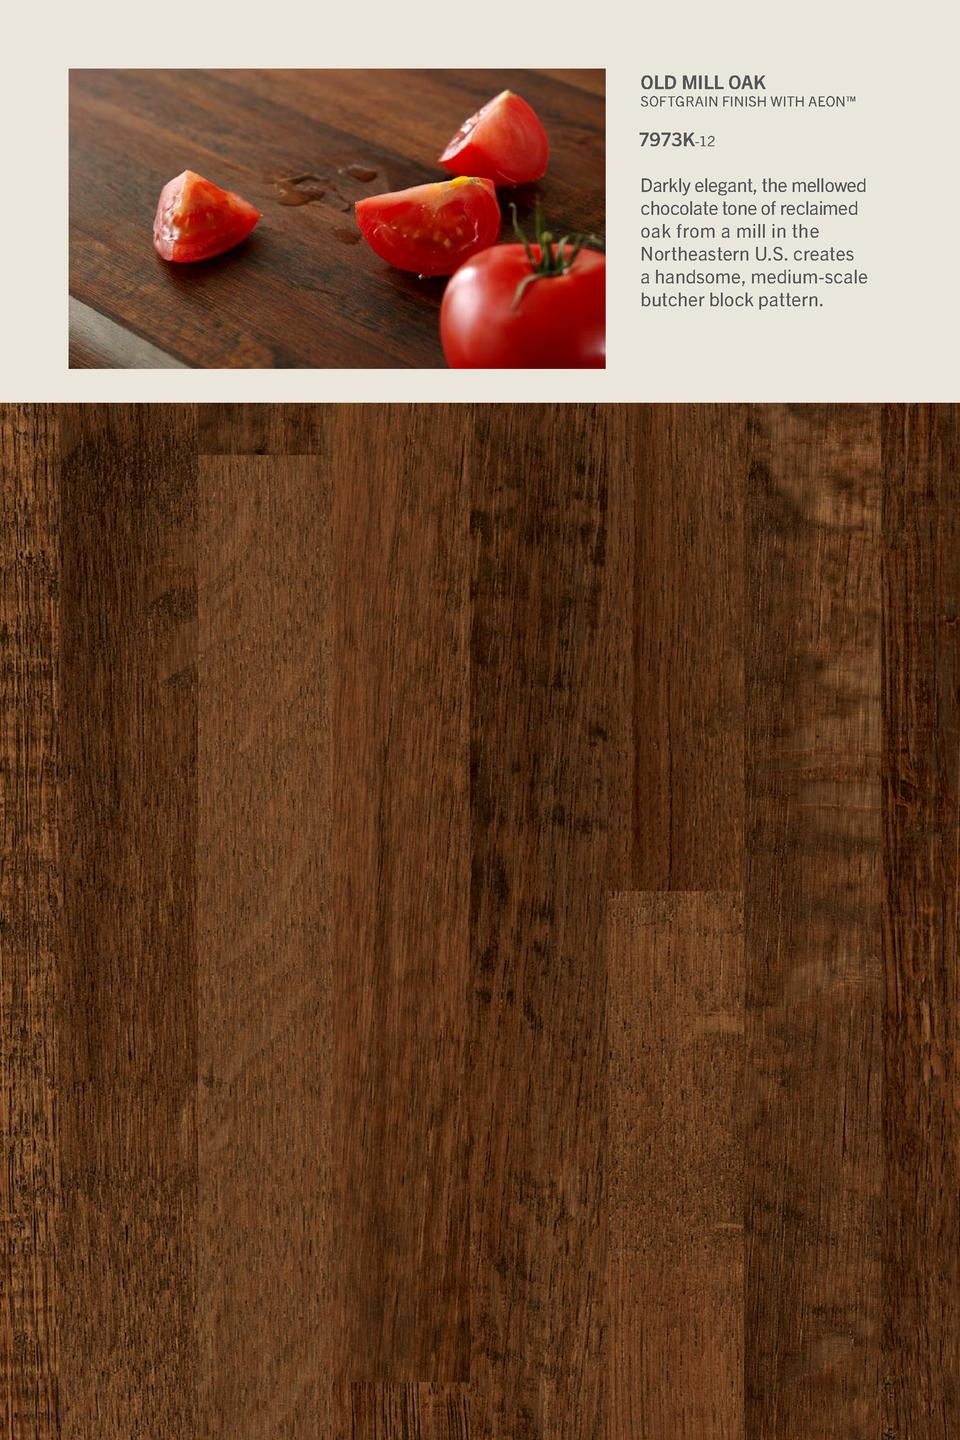 Old Mill Oak  Softgrain Finish With Aeon     7973K-12 Darkly elegant, the mellowed chocolate tone of reclaimed oak from a ...